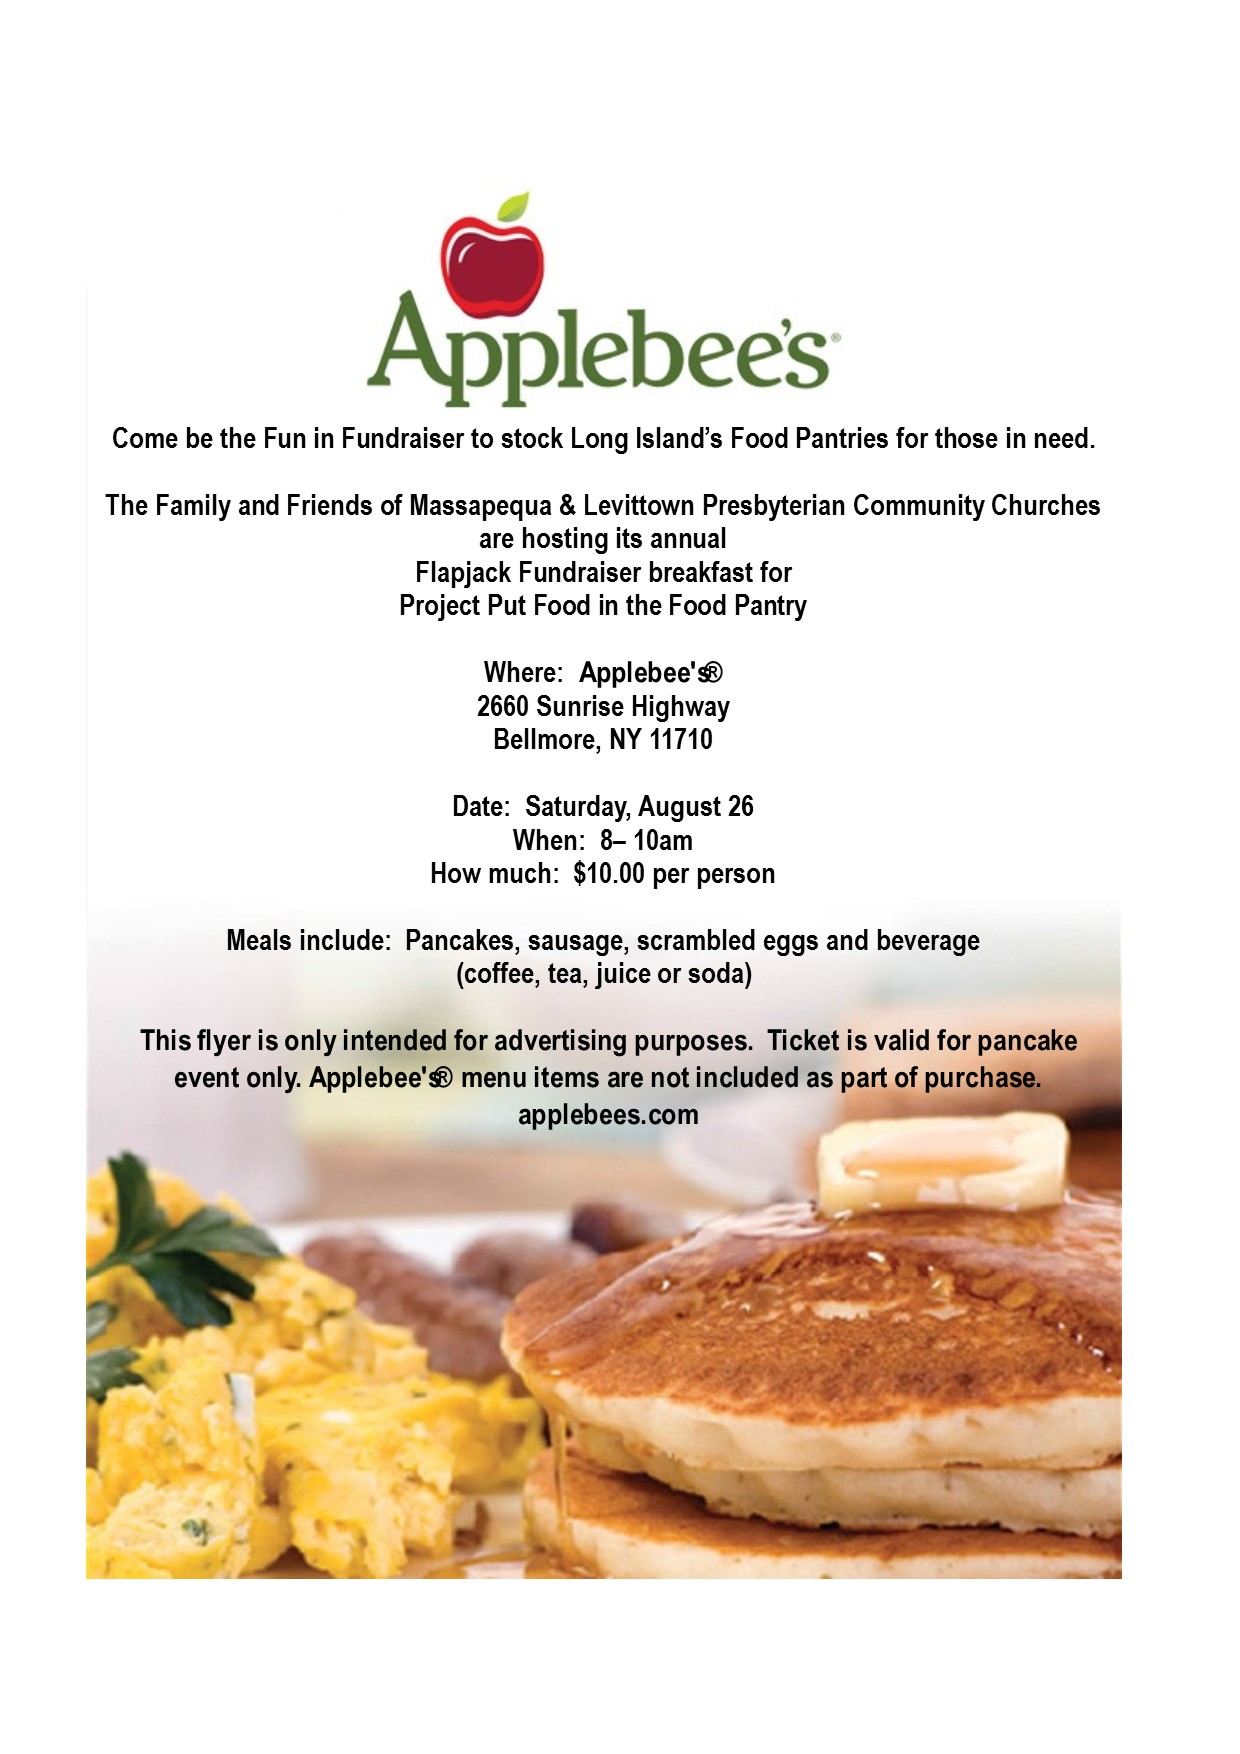 Saturday August 26 at 8am Join us for a Flapjack Fundraiser